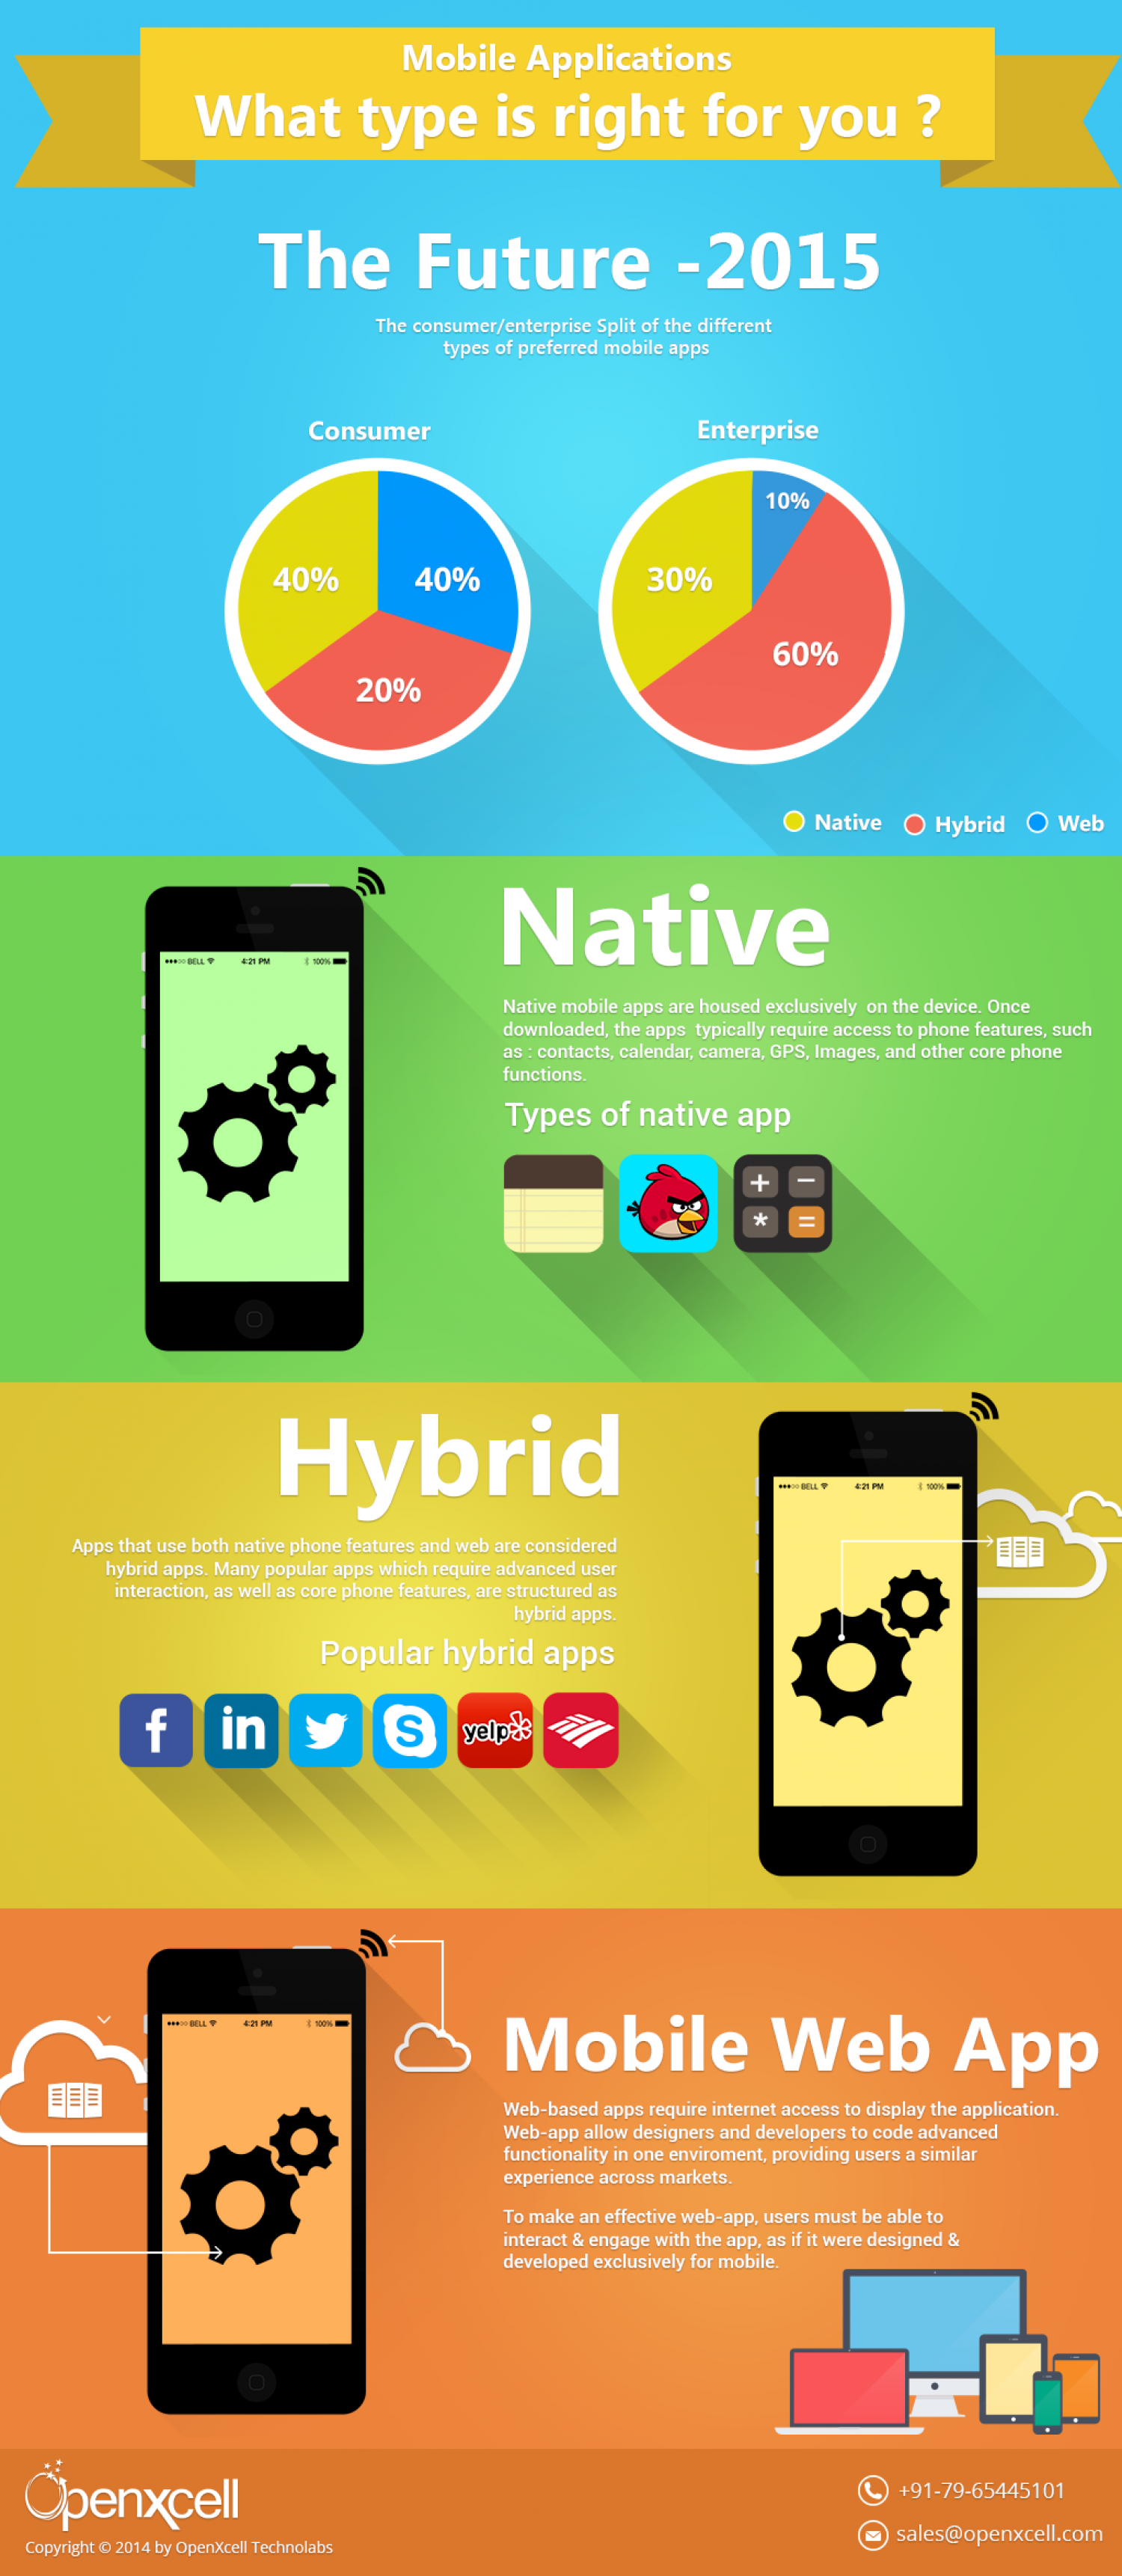 Mobile Applications: What Type Is Right For You? Infographic